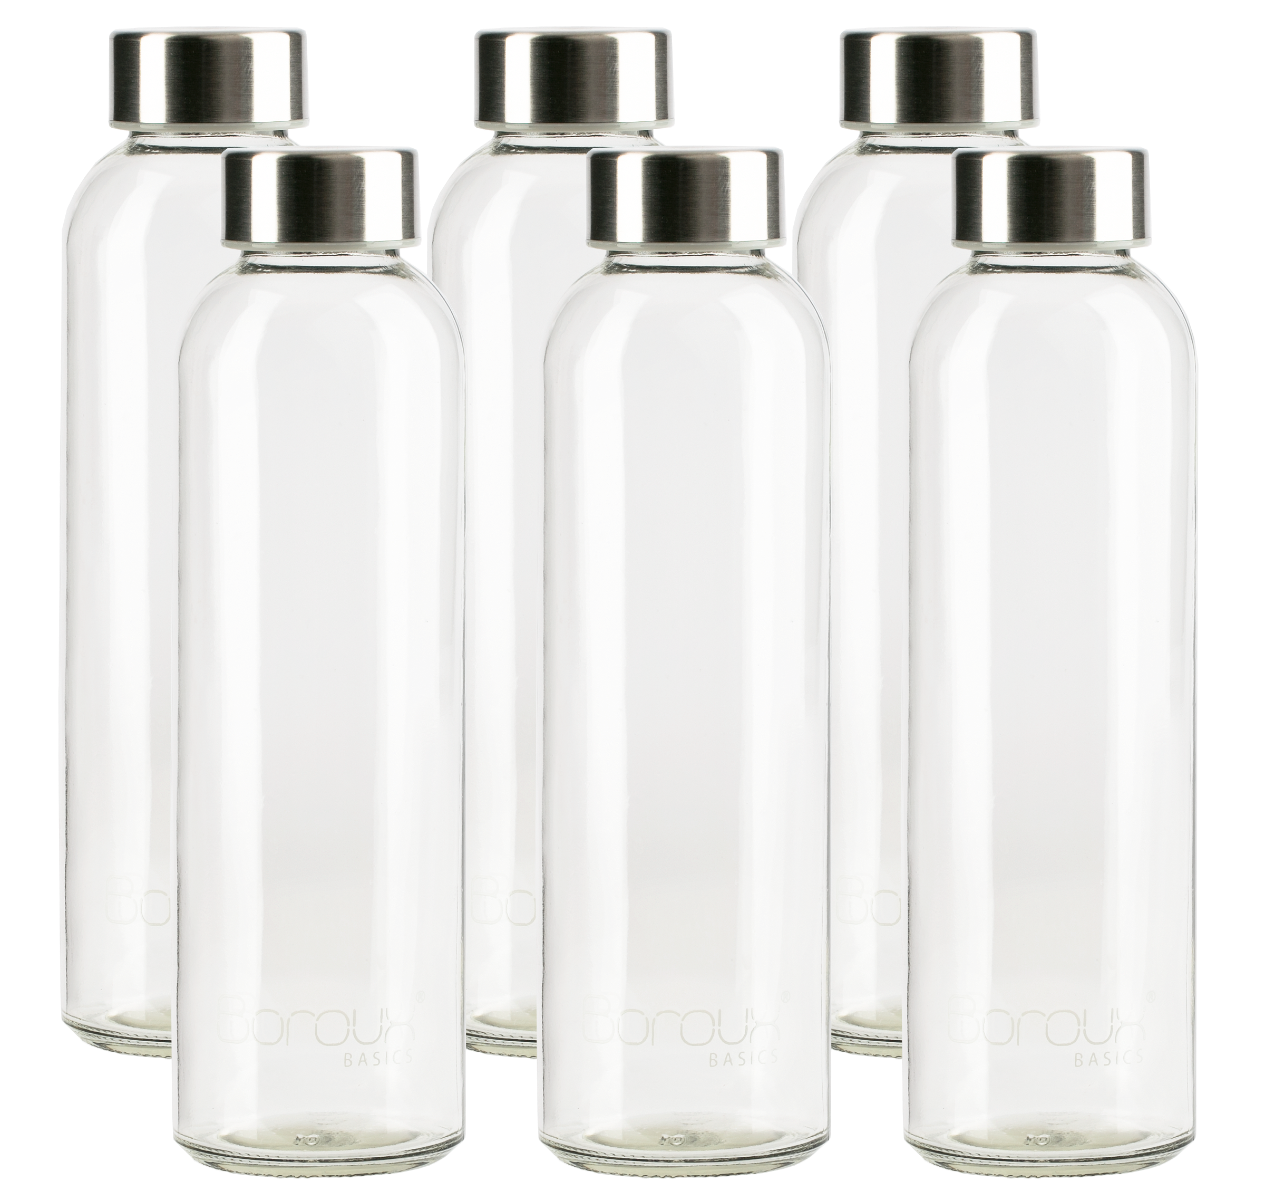 Boroux 4 Pack Glass Water Bottle